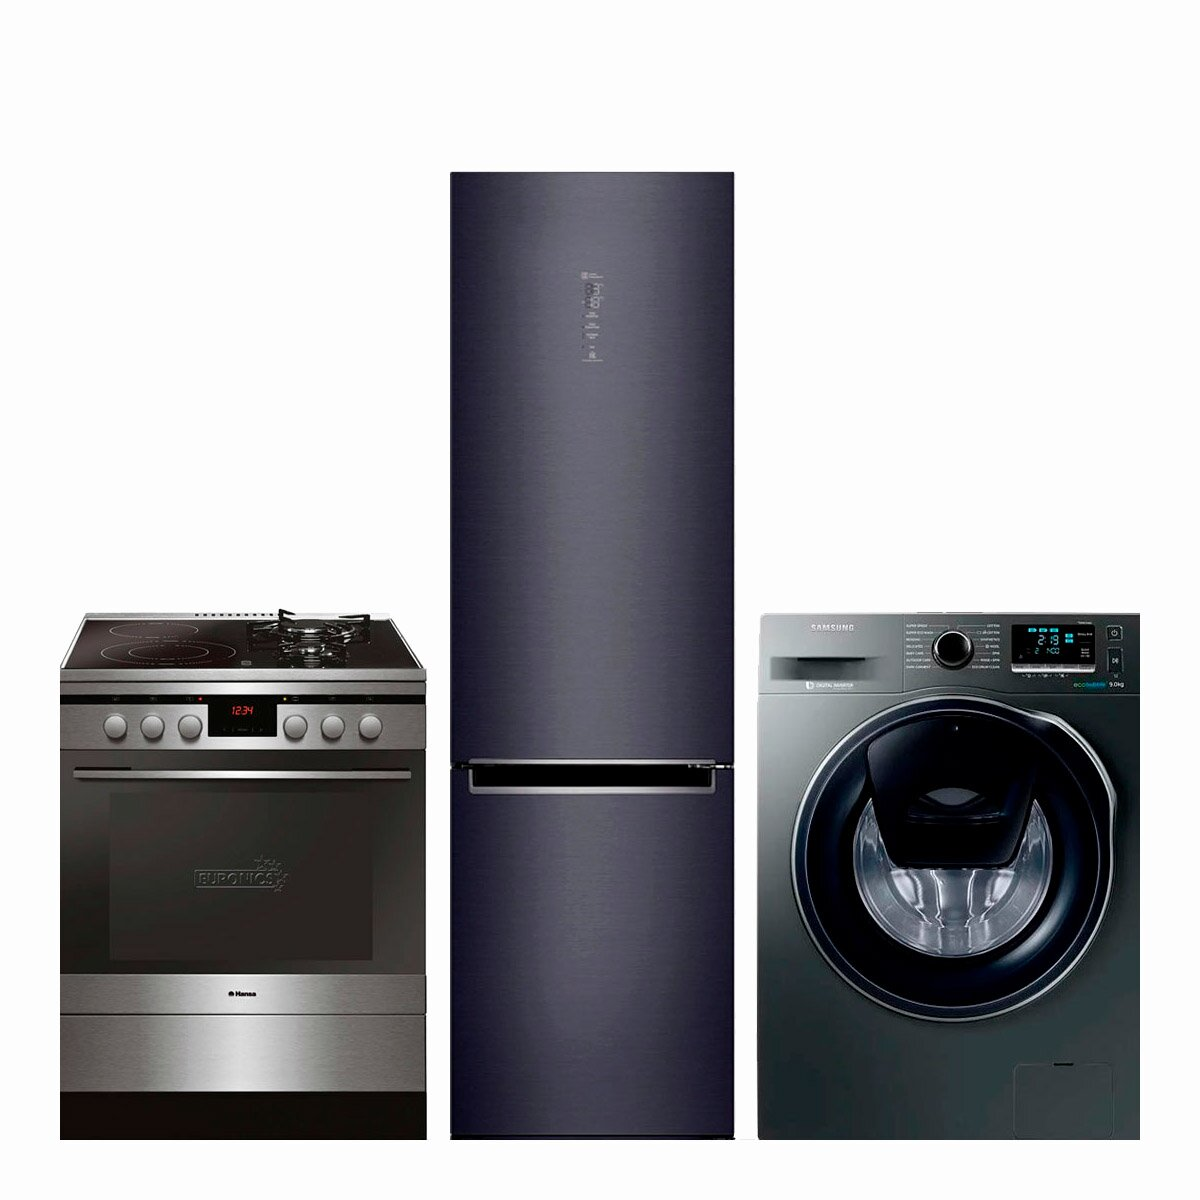 Large household appliances